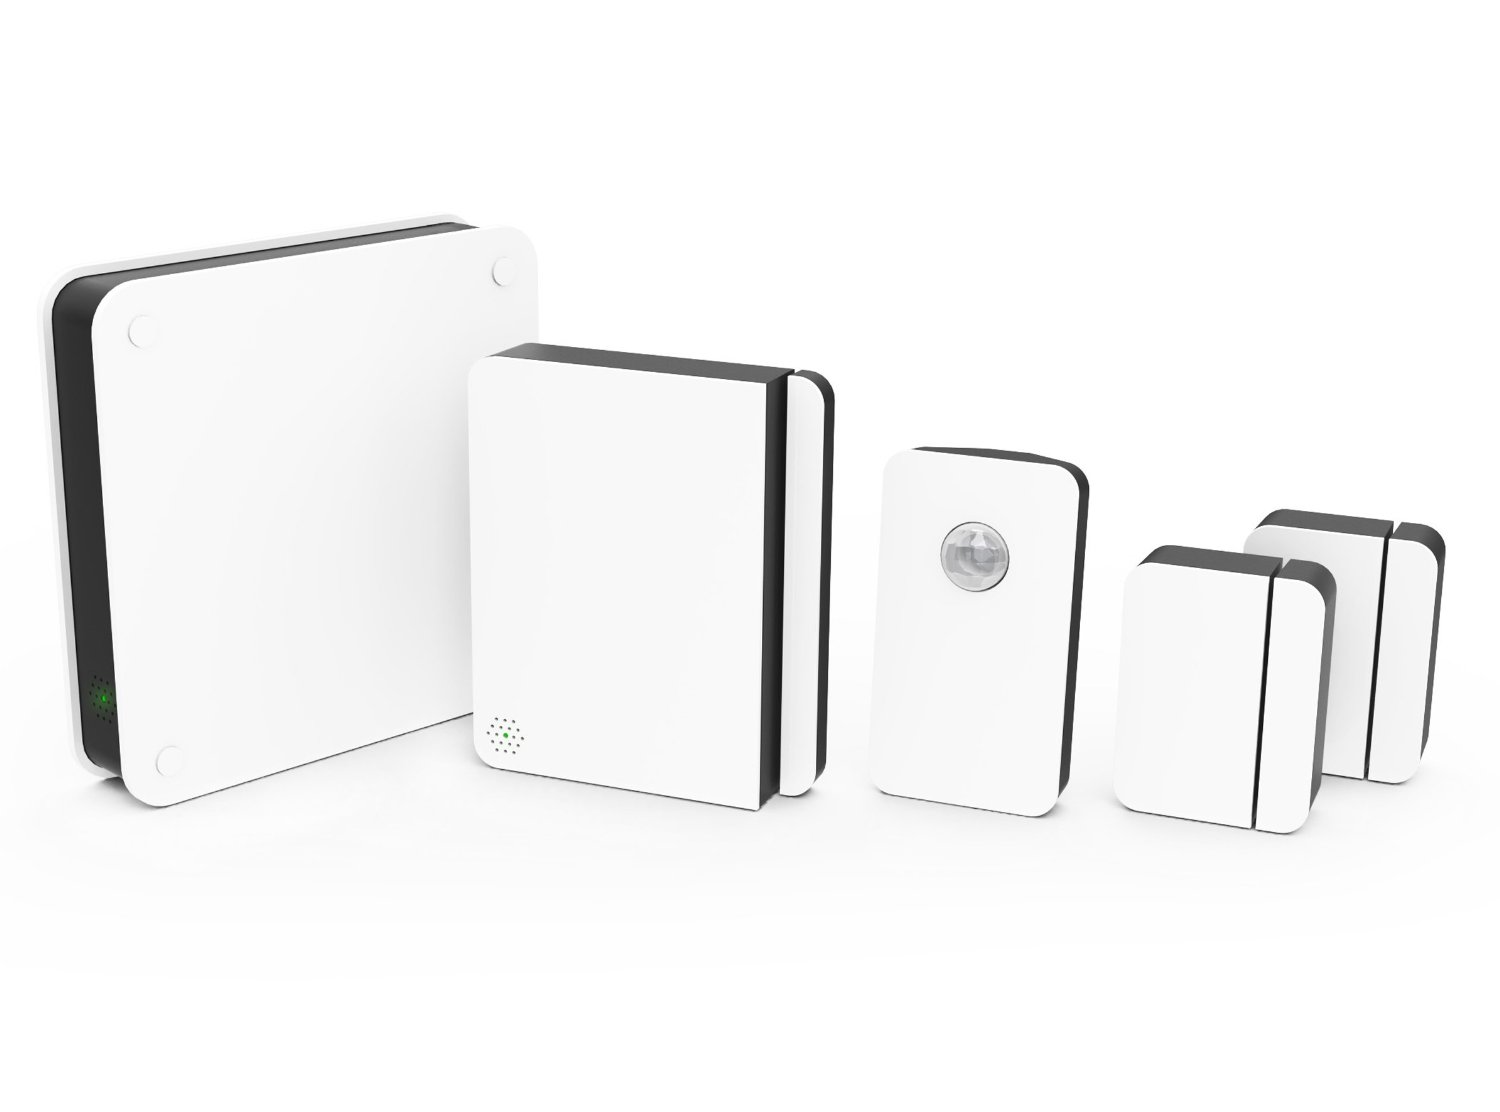 Scout Alarm Wireless Home Security System